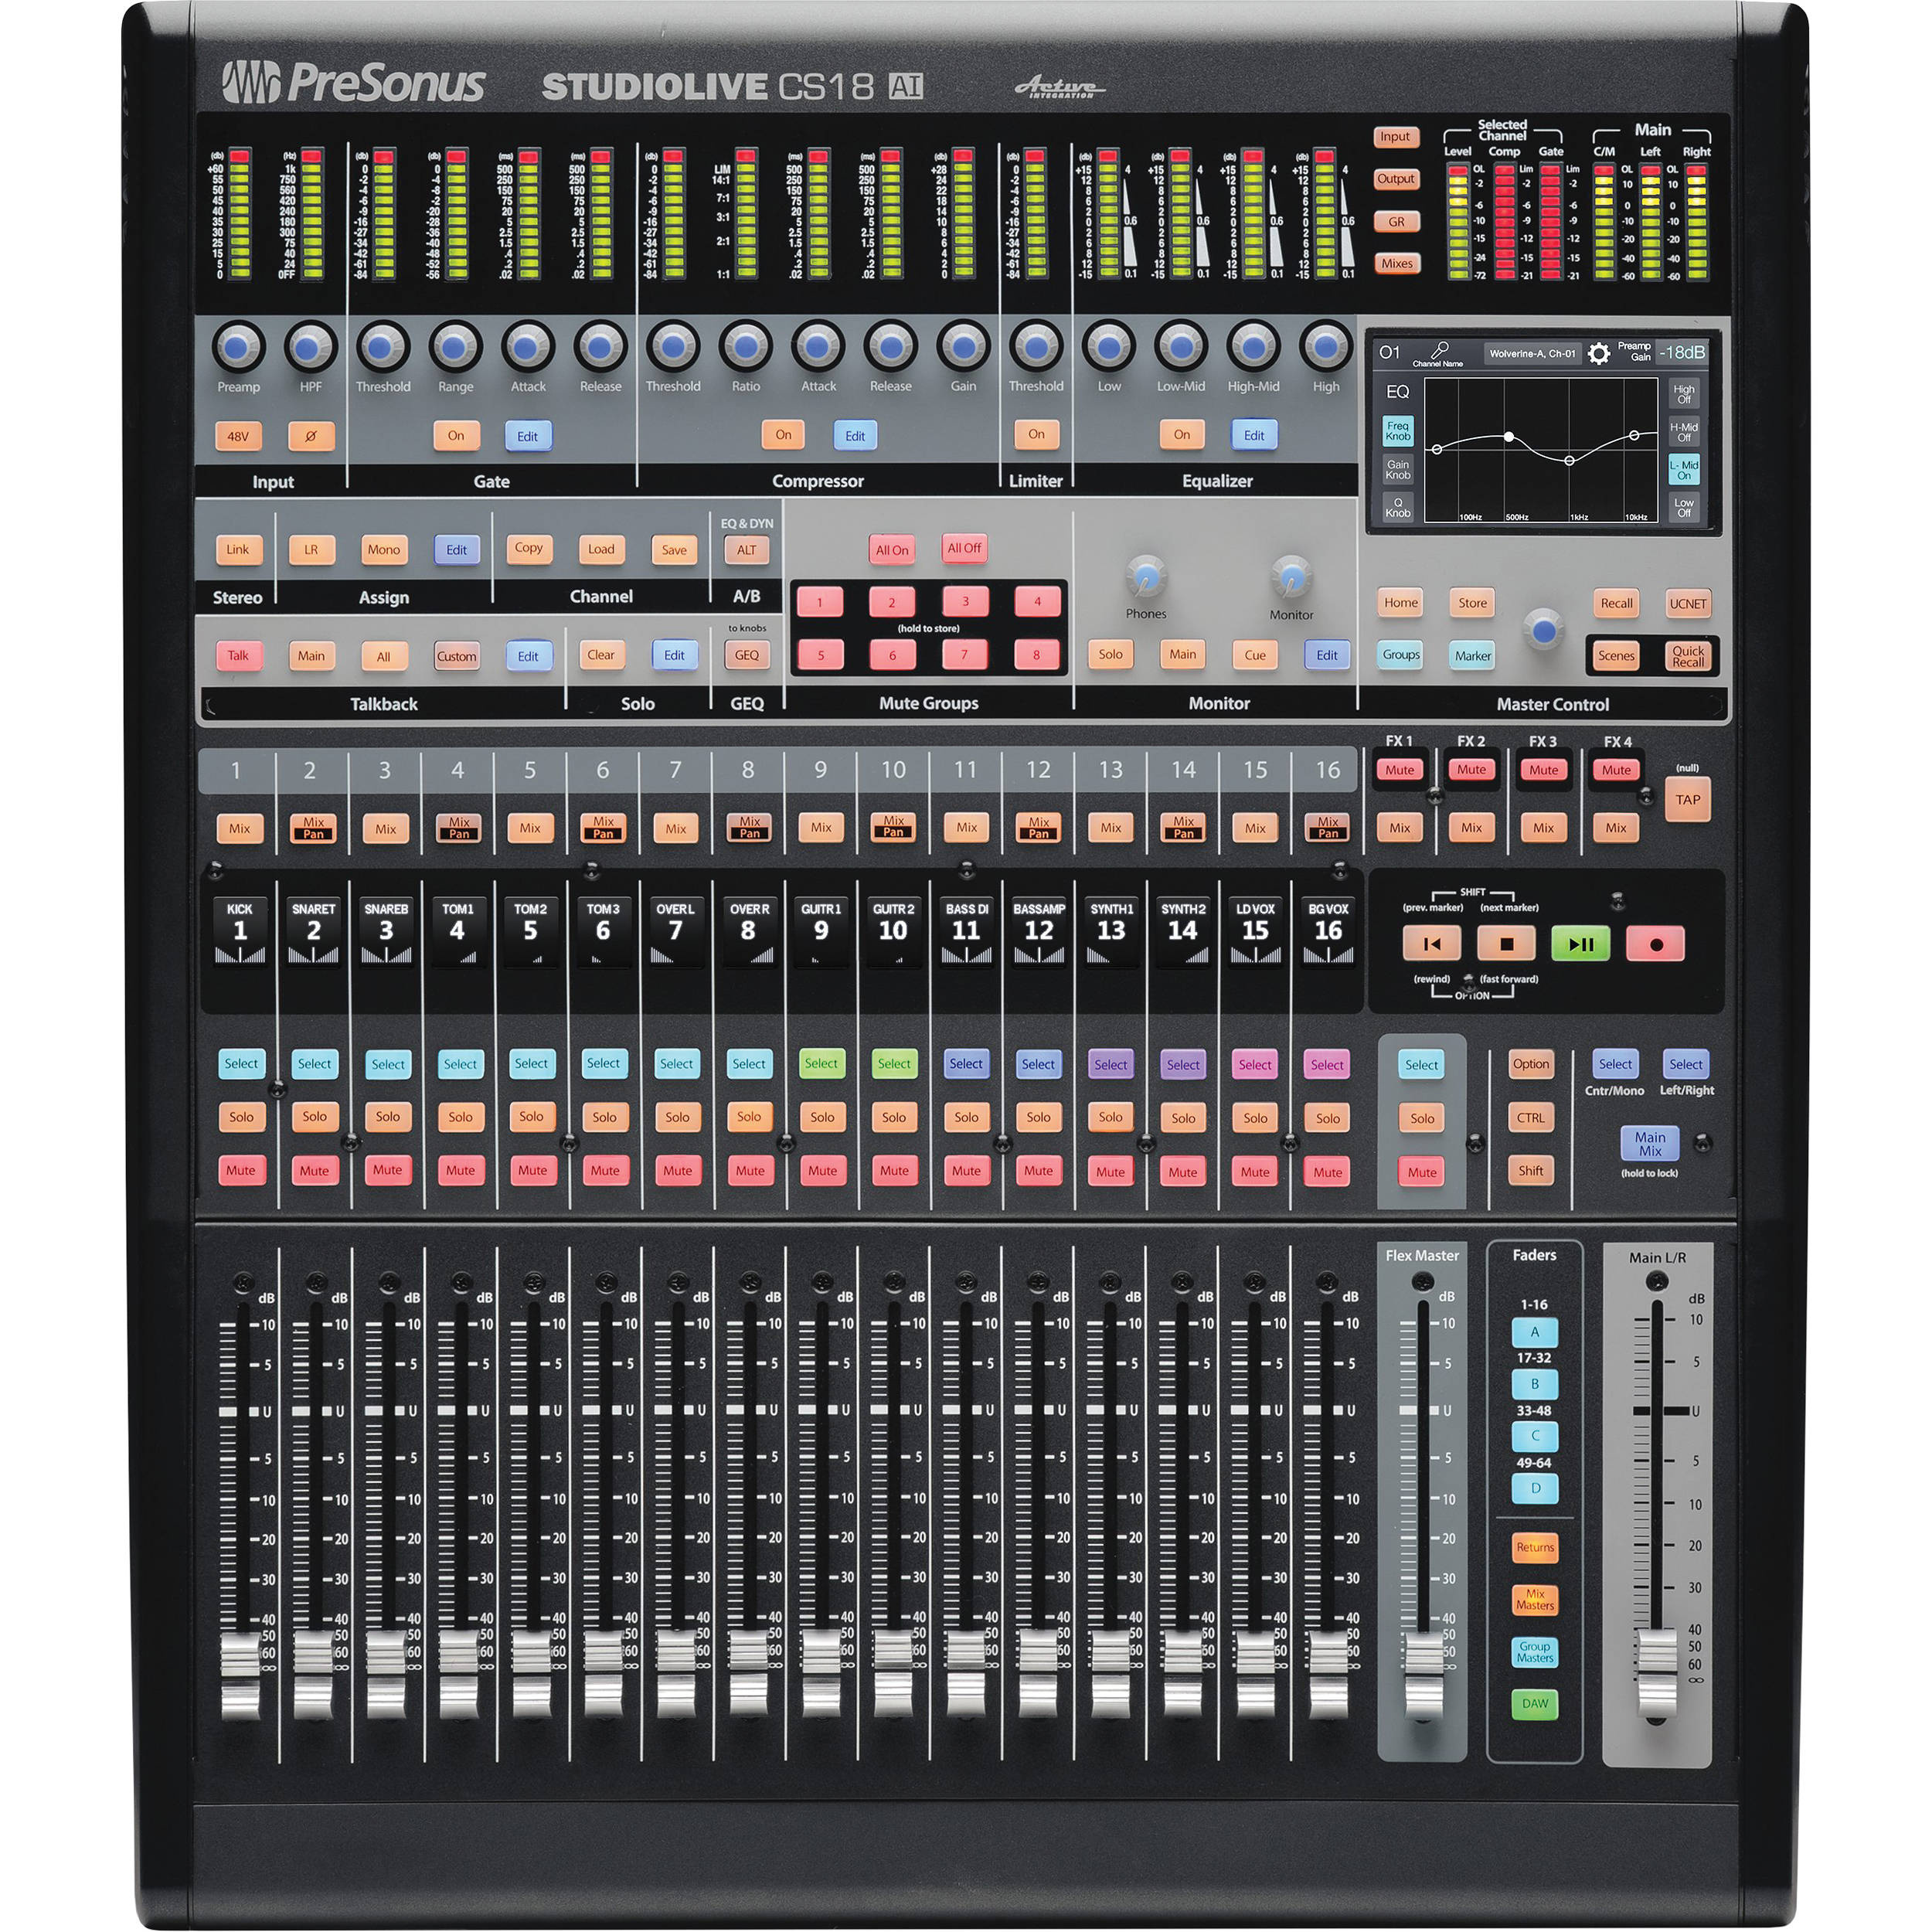 PreSonus CS18AI Ethernet/AVB Control Surface with 18-Touch Faders